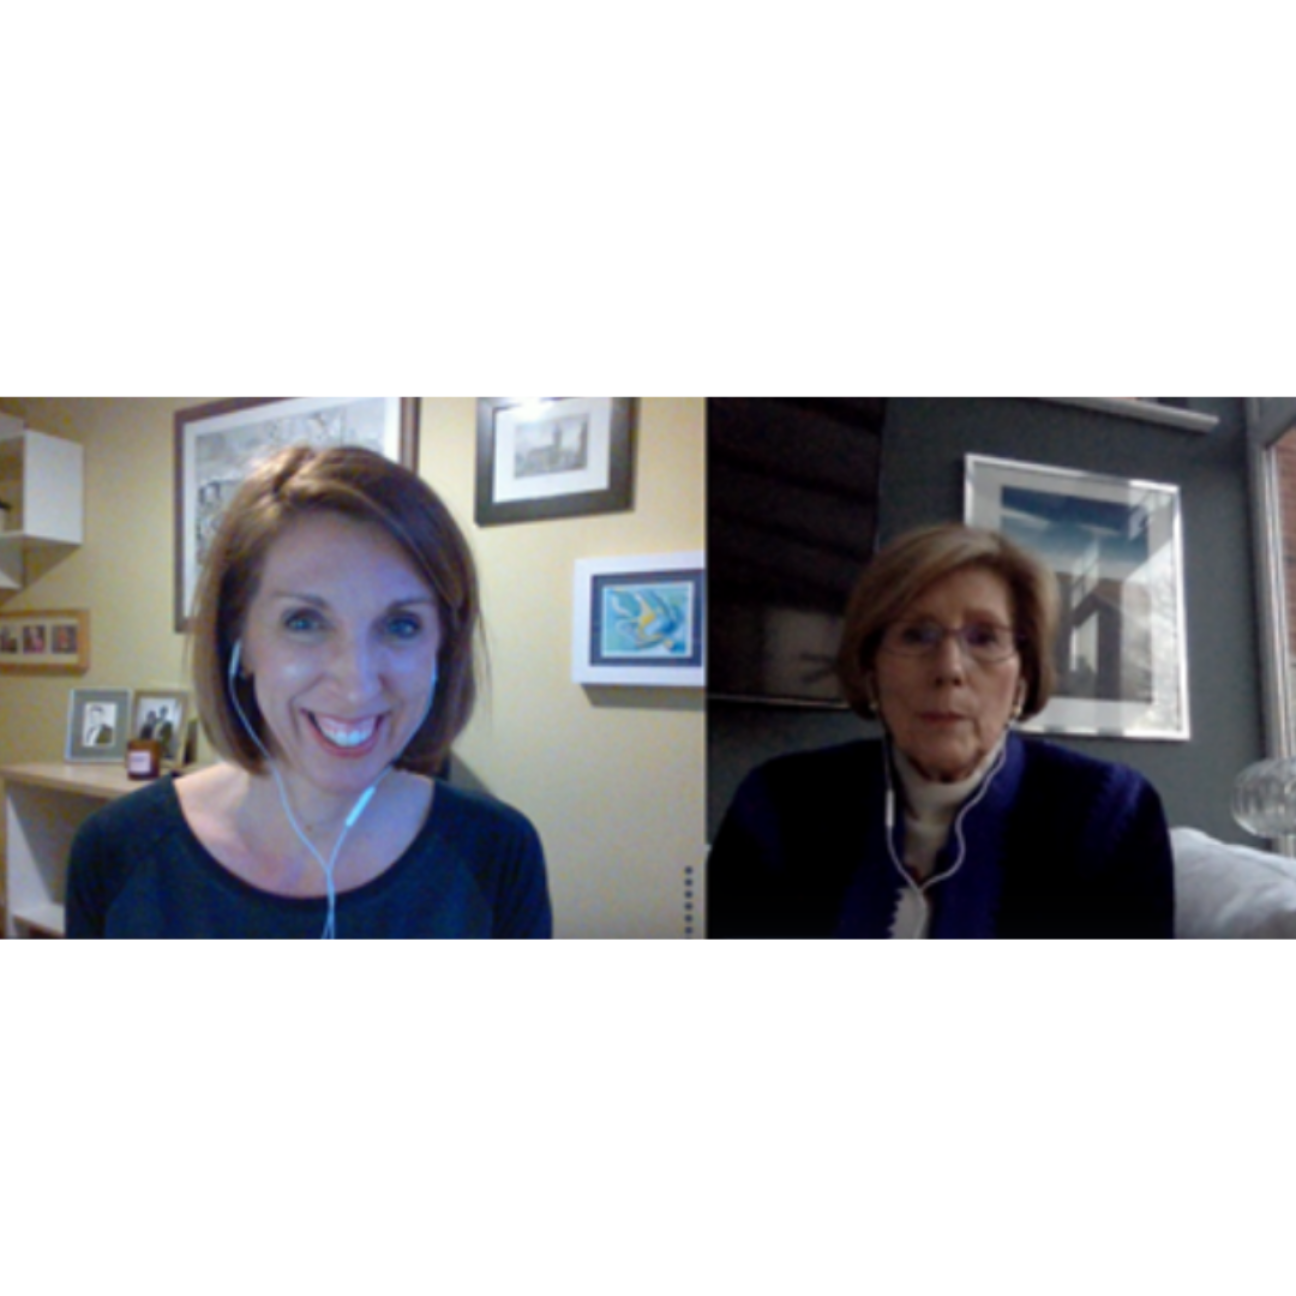 096 - I have taken HRT for nearly 50 years and won't ever stop it - Kay Anderson and Dr Louise Newson